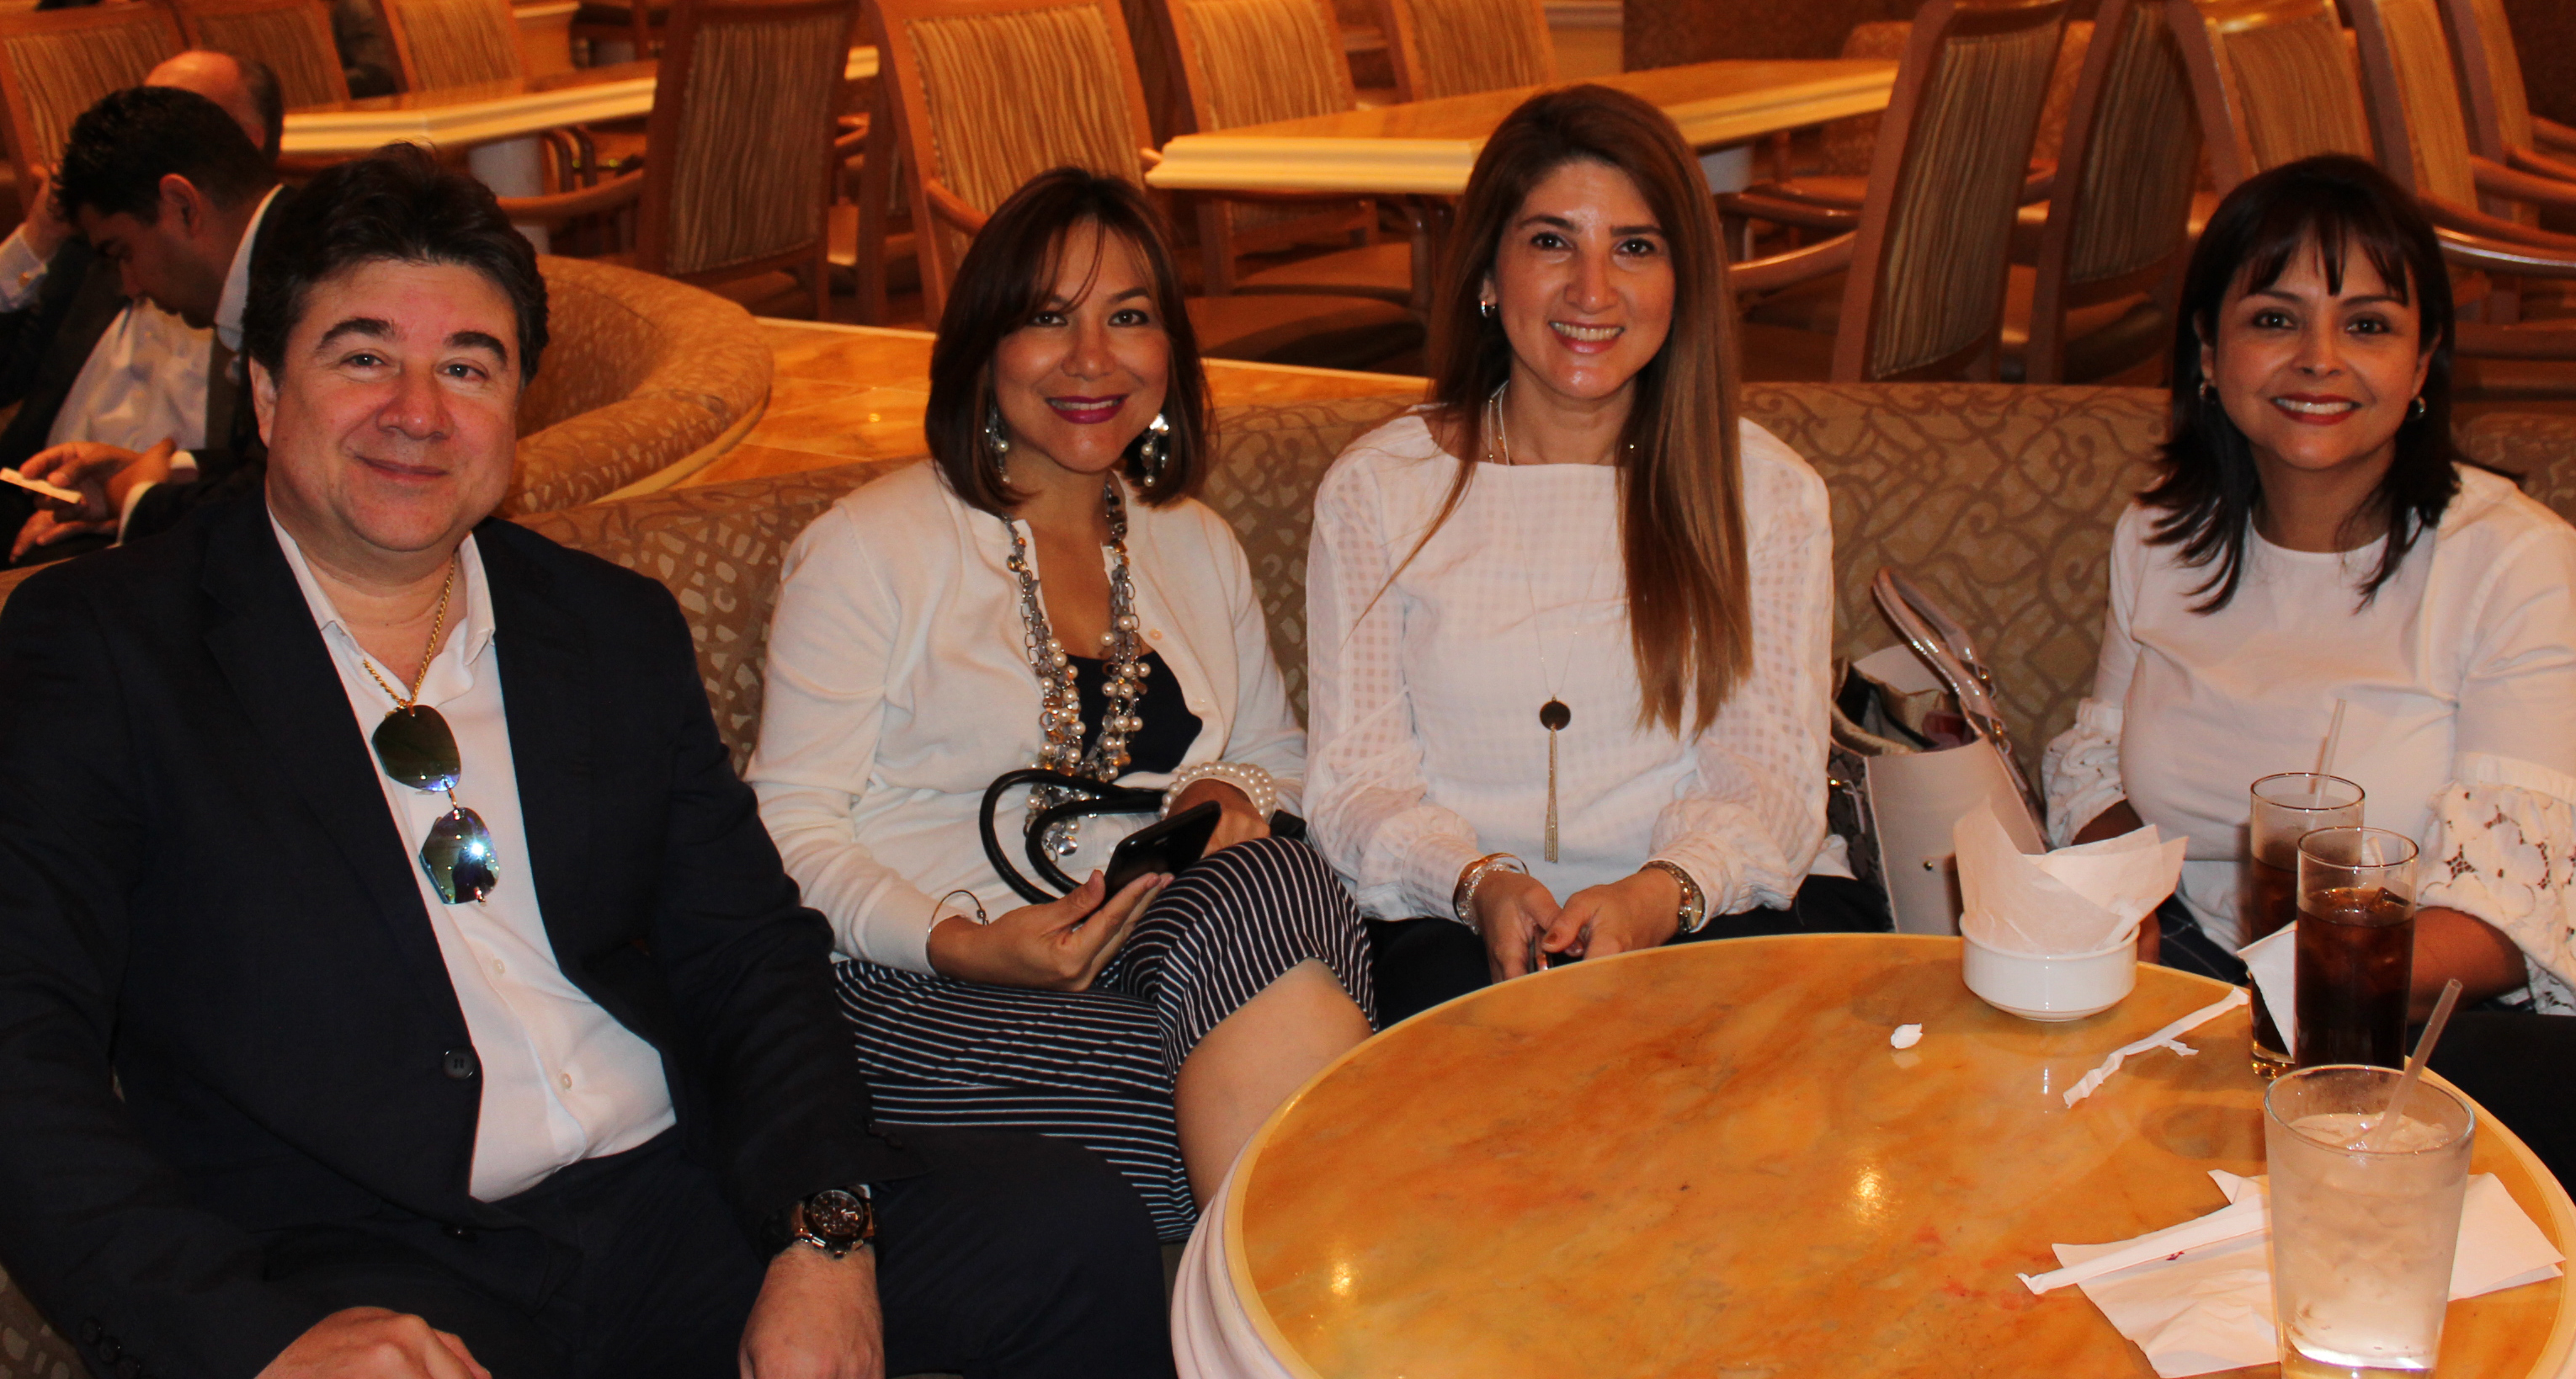 Doral Chamber of Commerce Carnival Cruise Luncheon 2019, Networking Event in Miami, Florida. Group enjoying themselves and networking at the lounge.